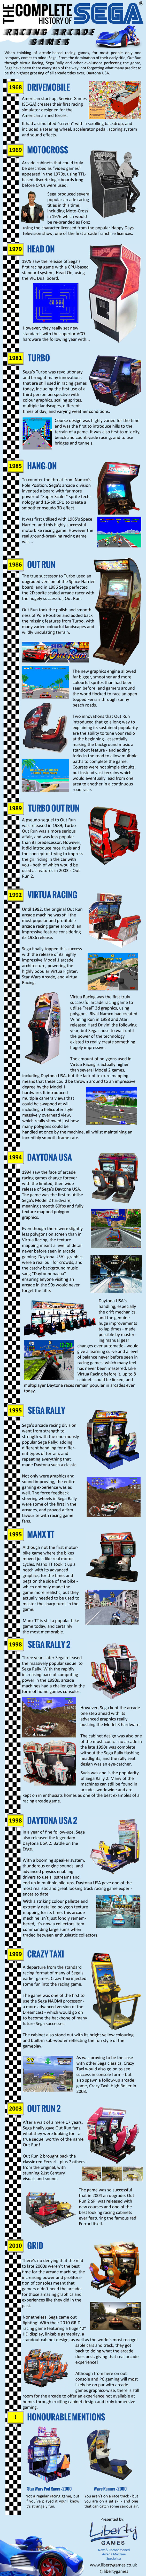 The Complete History of SEGA Racing Arcade Games